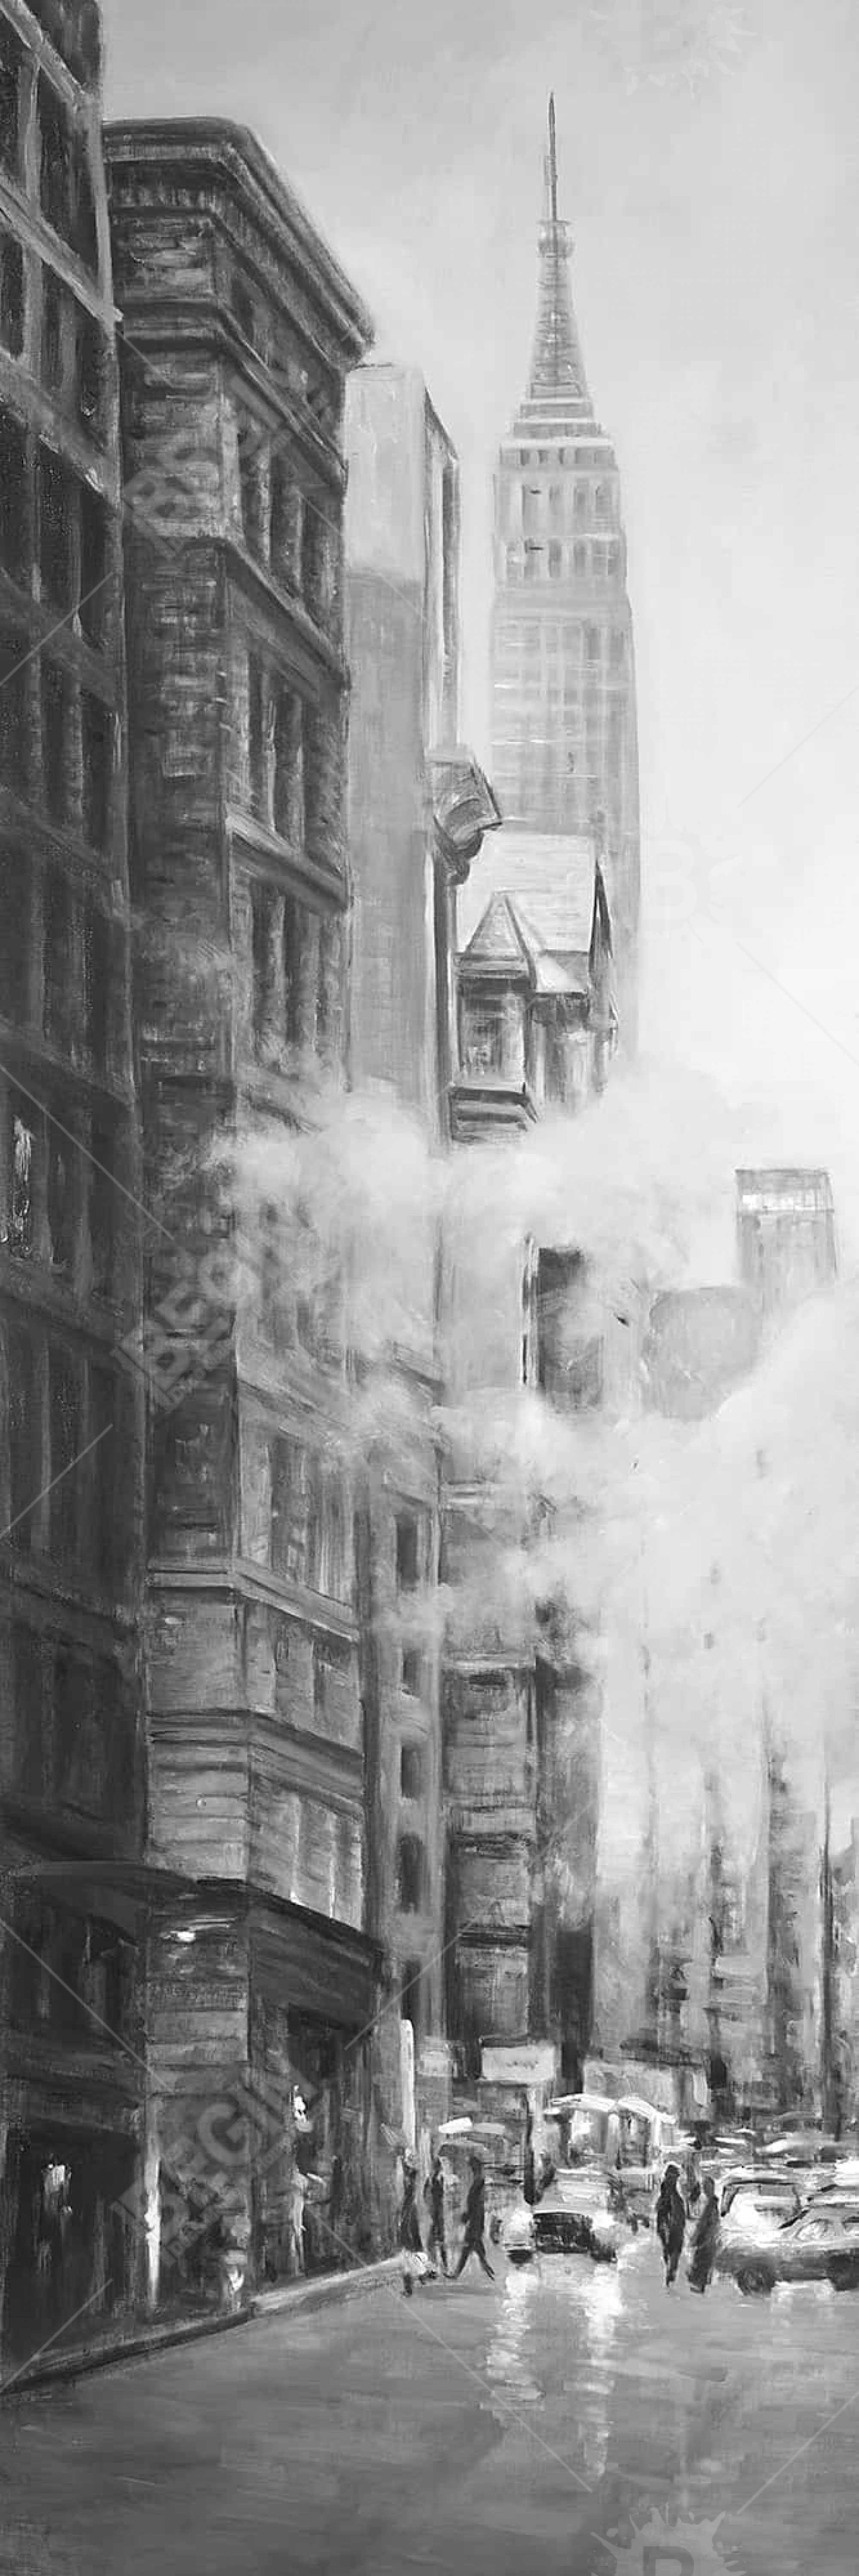 Morning in the streets of new-york city monochrome